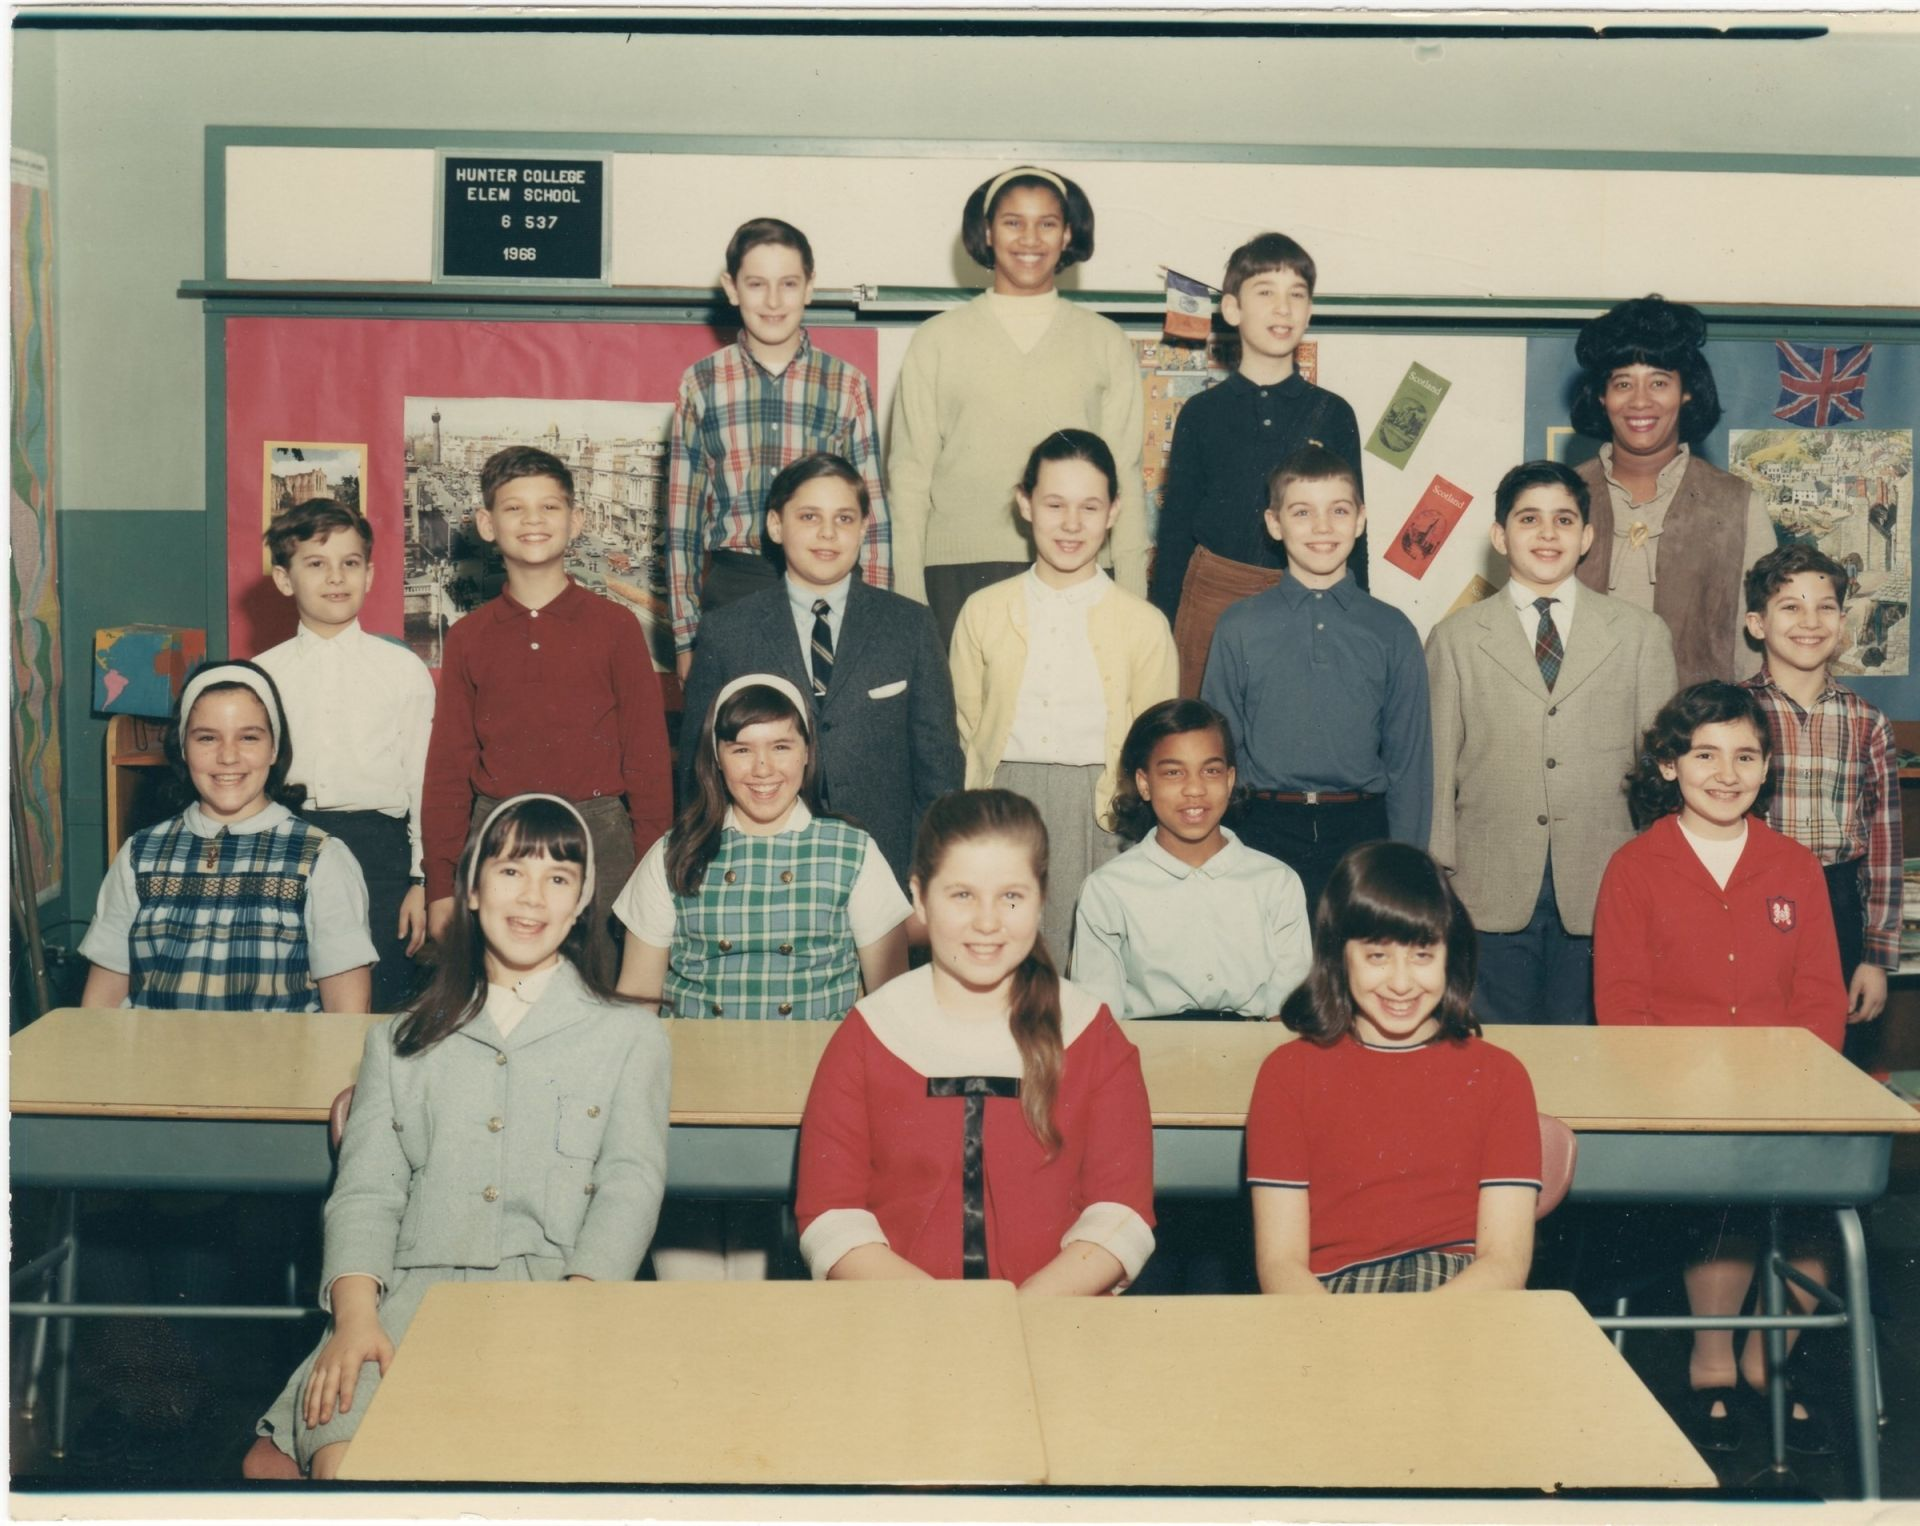 HCES Class of 1966 - 6th Grade class photo - Class 6-537, Mrs. Edith V. Scott - June 1966